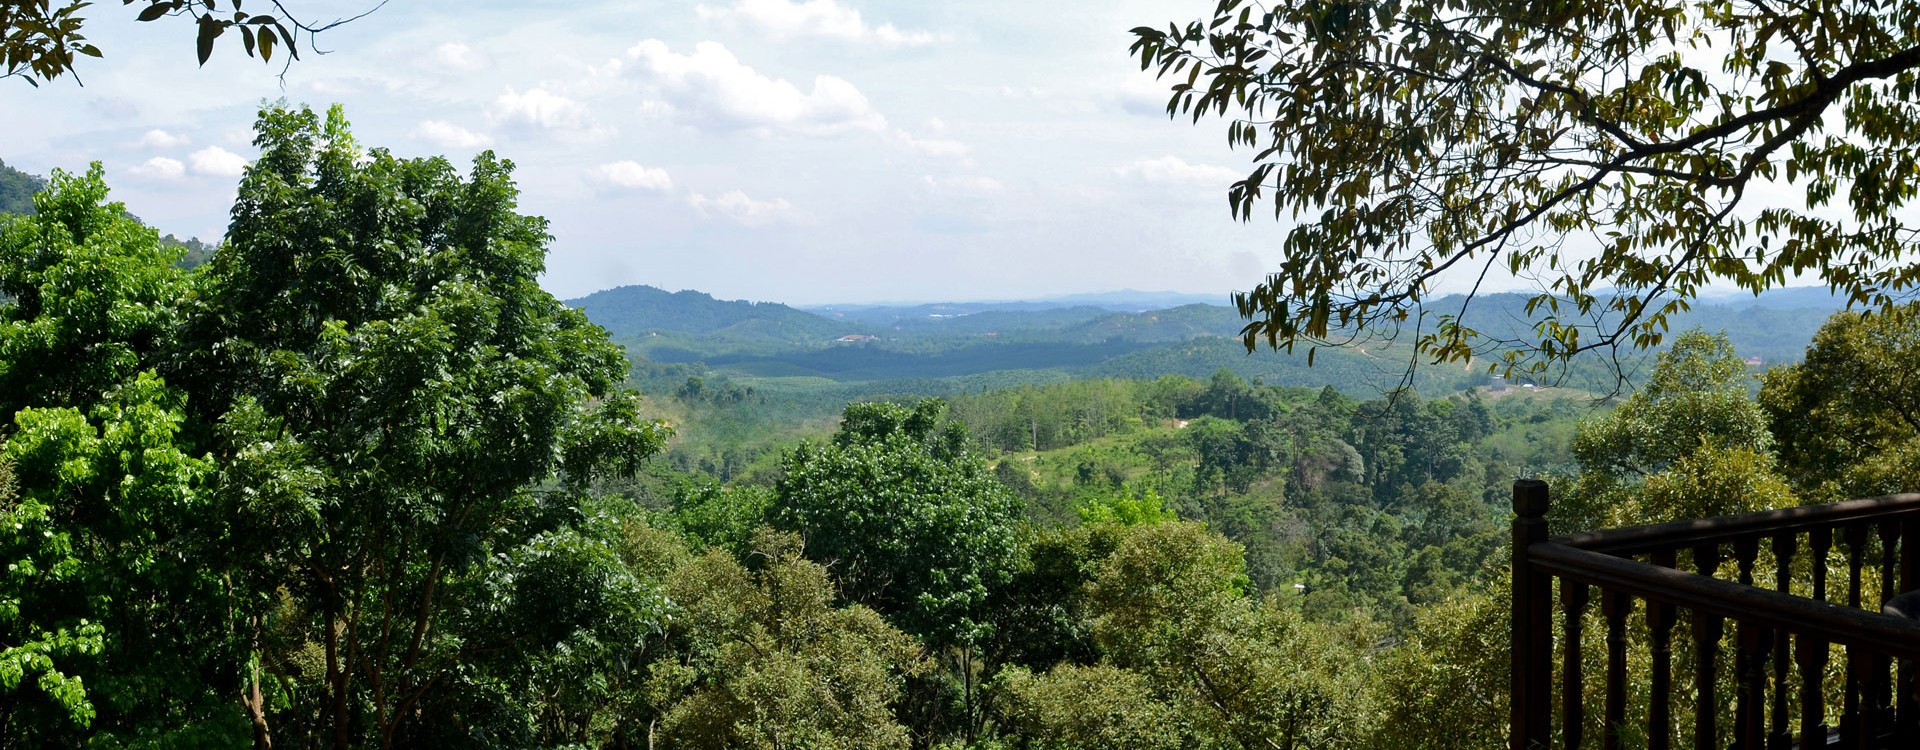 the Dusun today – Emas House. On the left is the mahogany forest with the jungle beyond. Ahead are the beautiful Mantin Hills